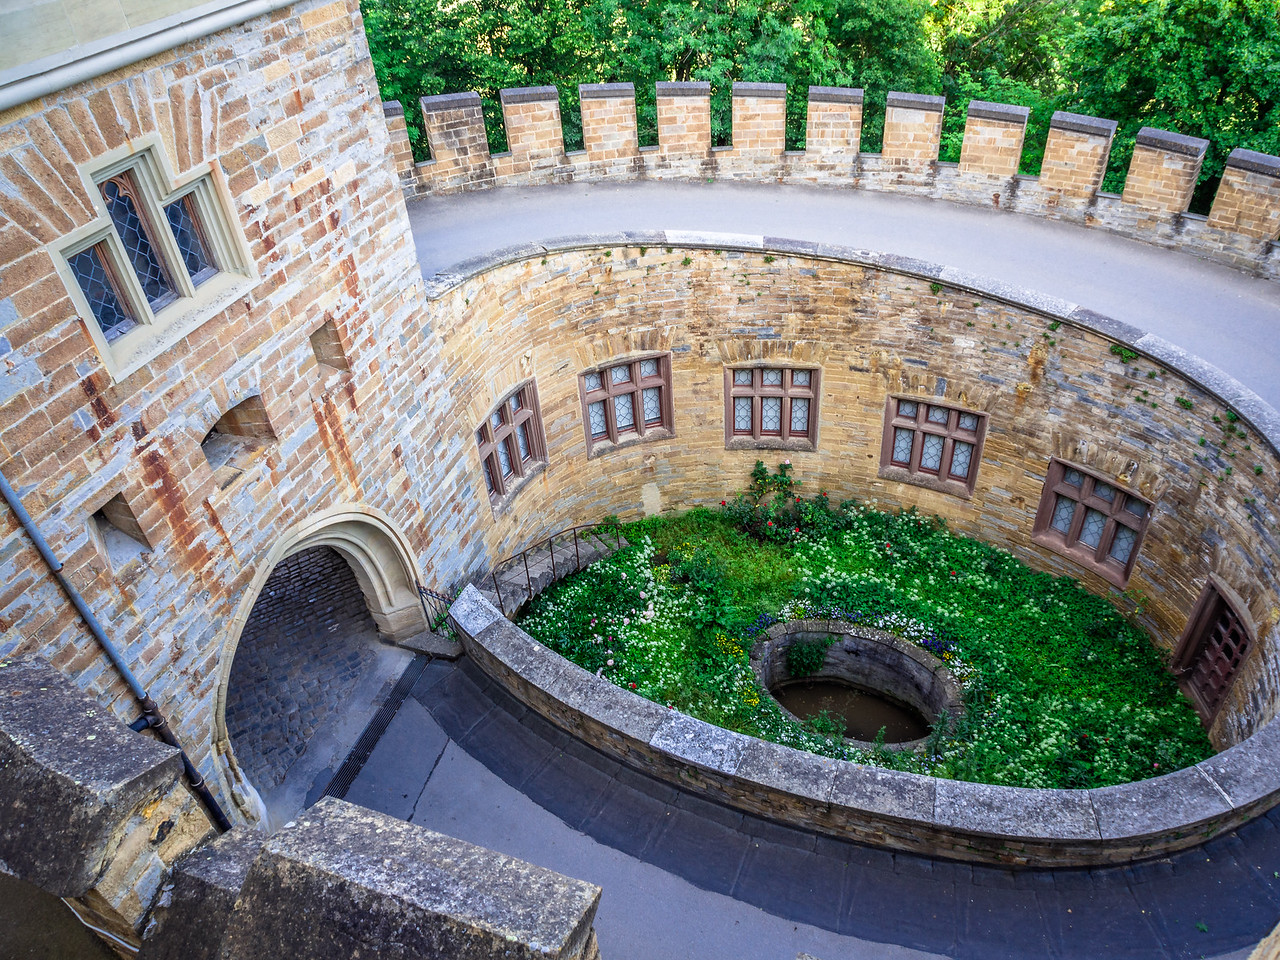 Looking Down to the Well, Hohenzollern Castle, Swabia, Germany